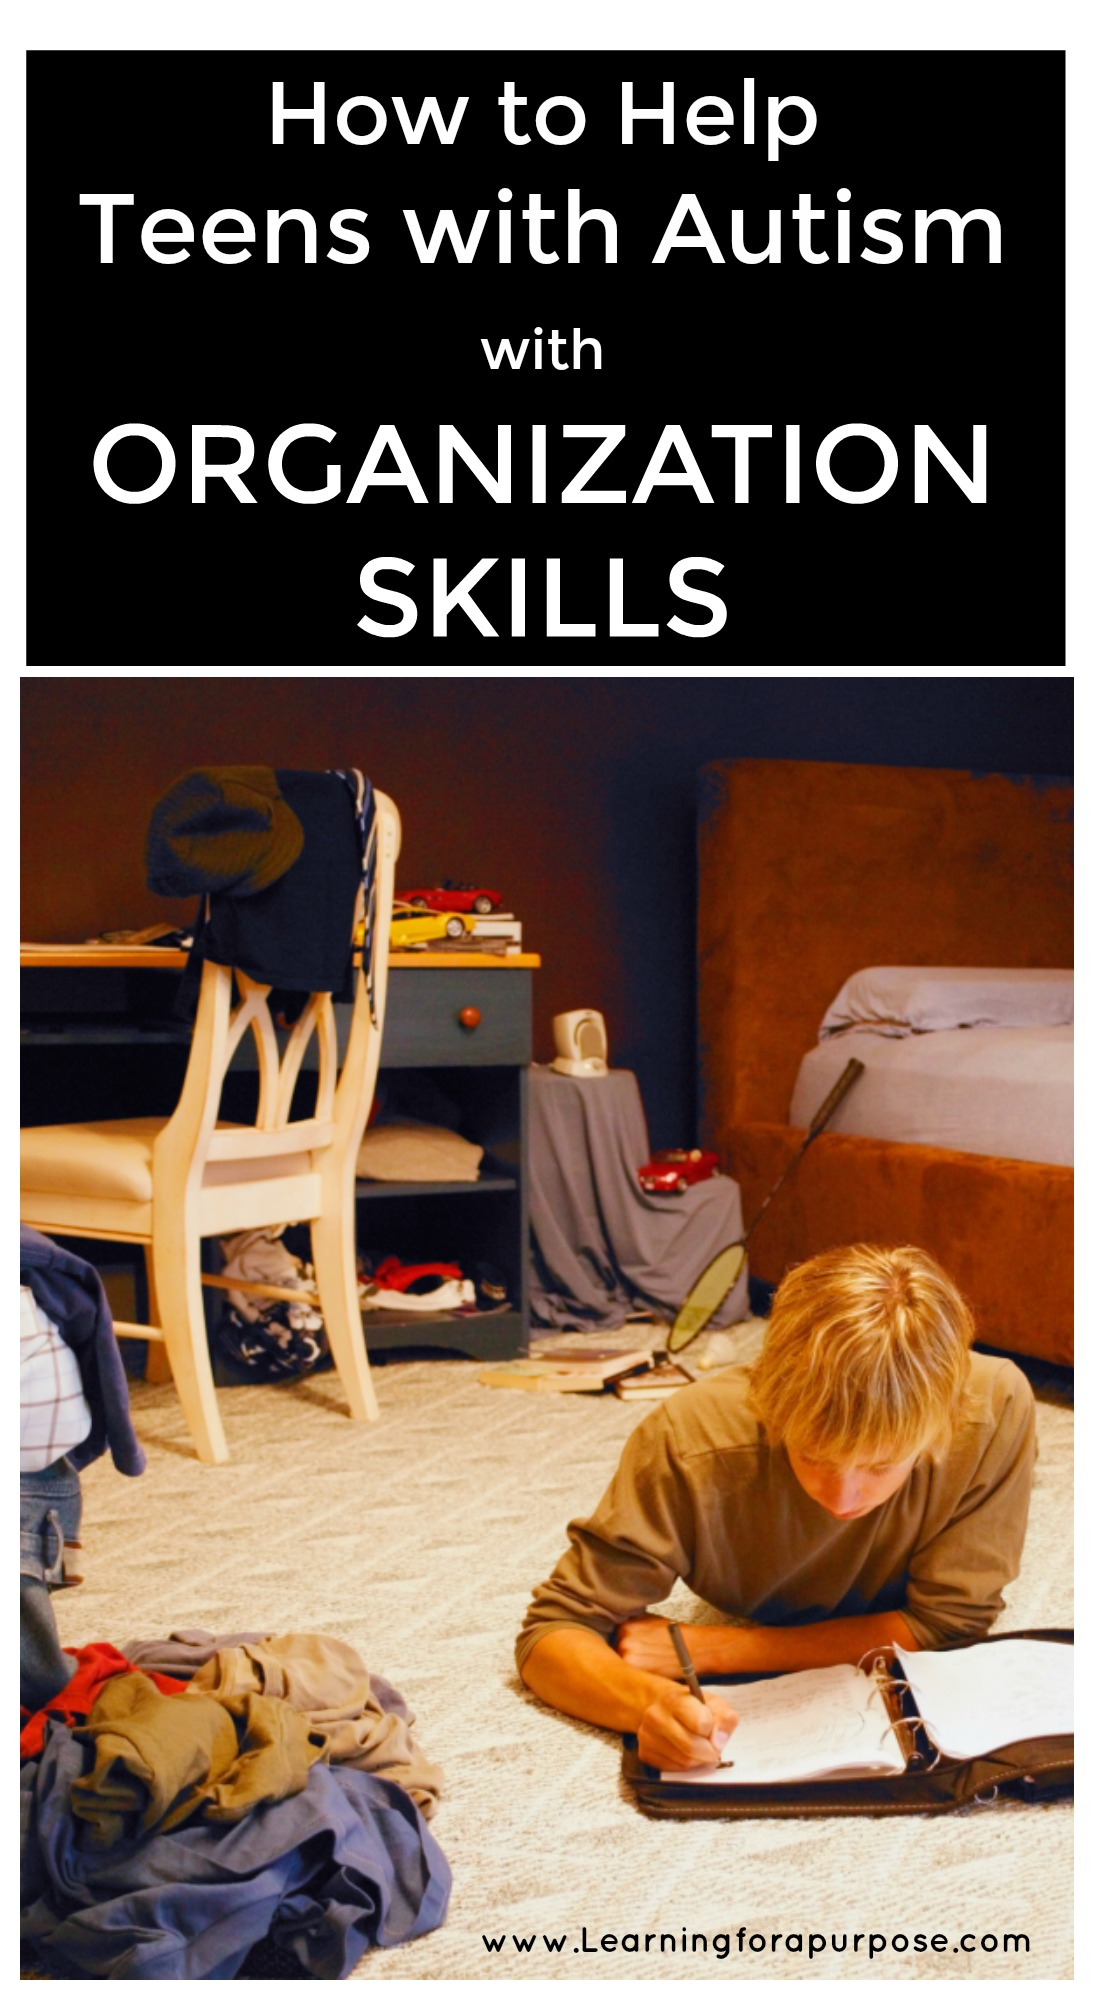 How To Help Teens With Autism With Organization Skills Learning For A Purpose